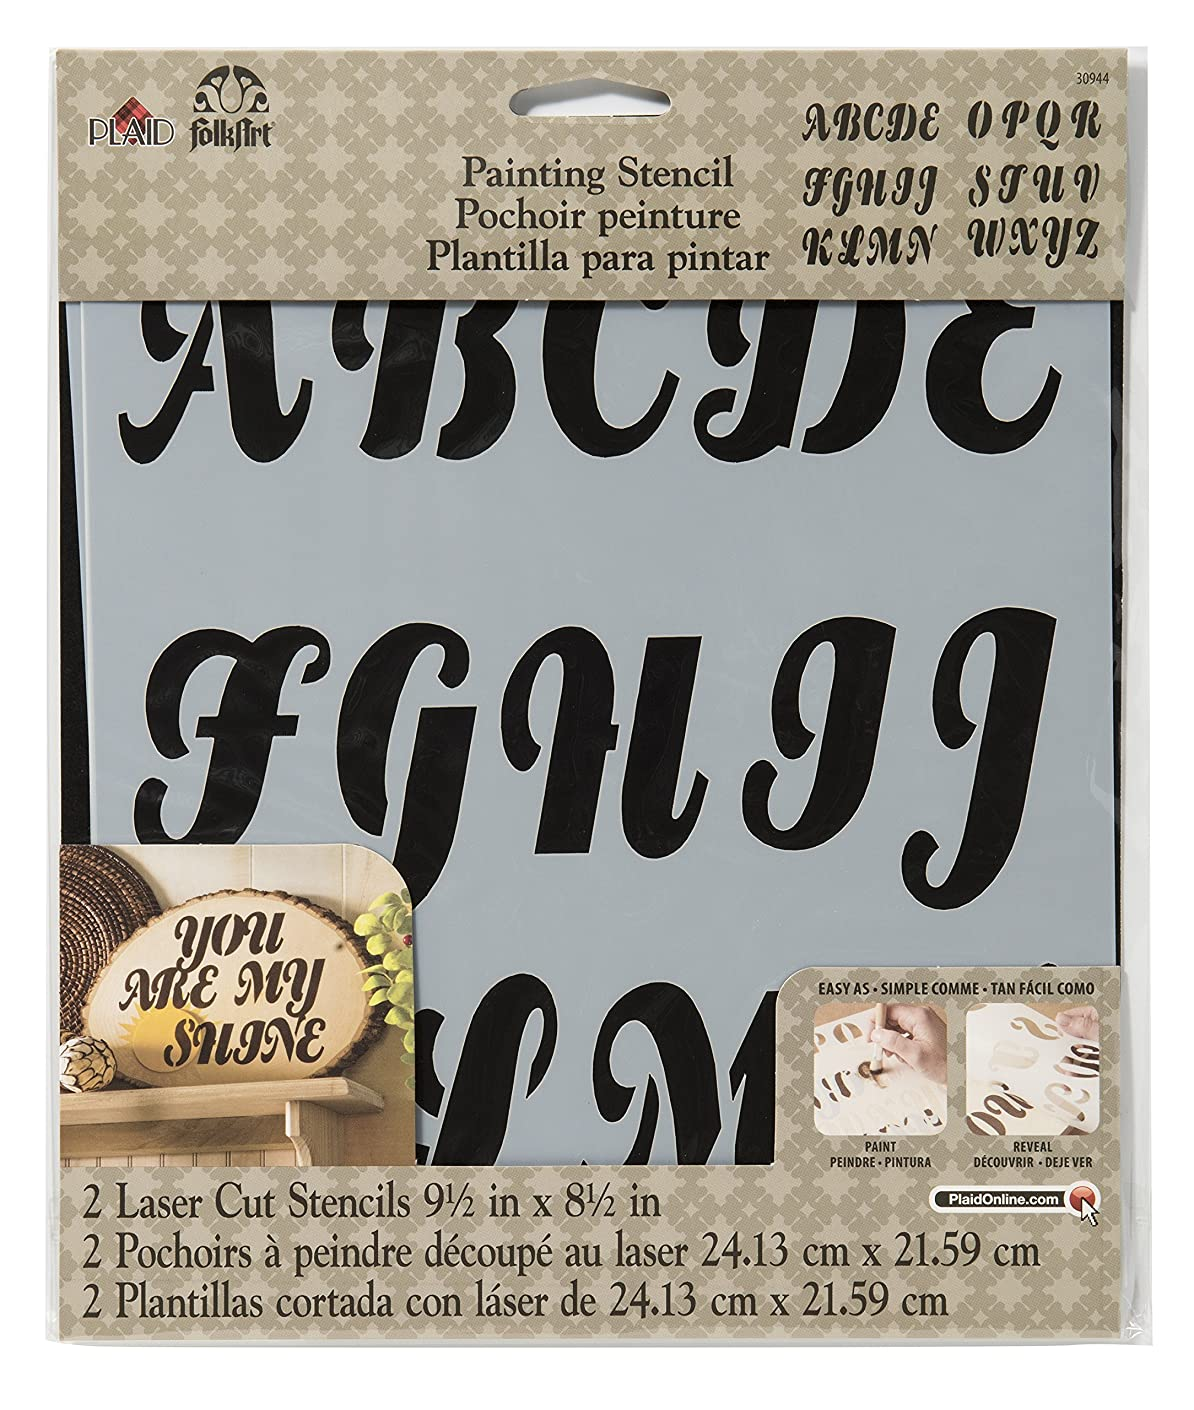 FolkArt Painting Stencil, 8.5 by 9.5-Inch, 30944 Alphabet Beverly